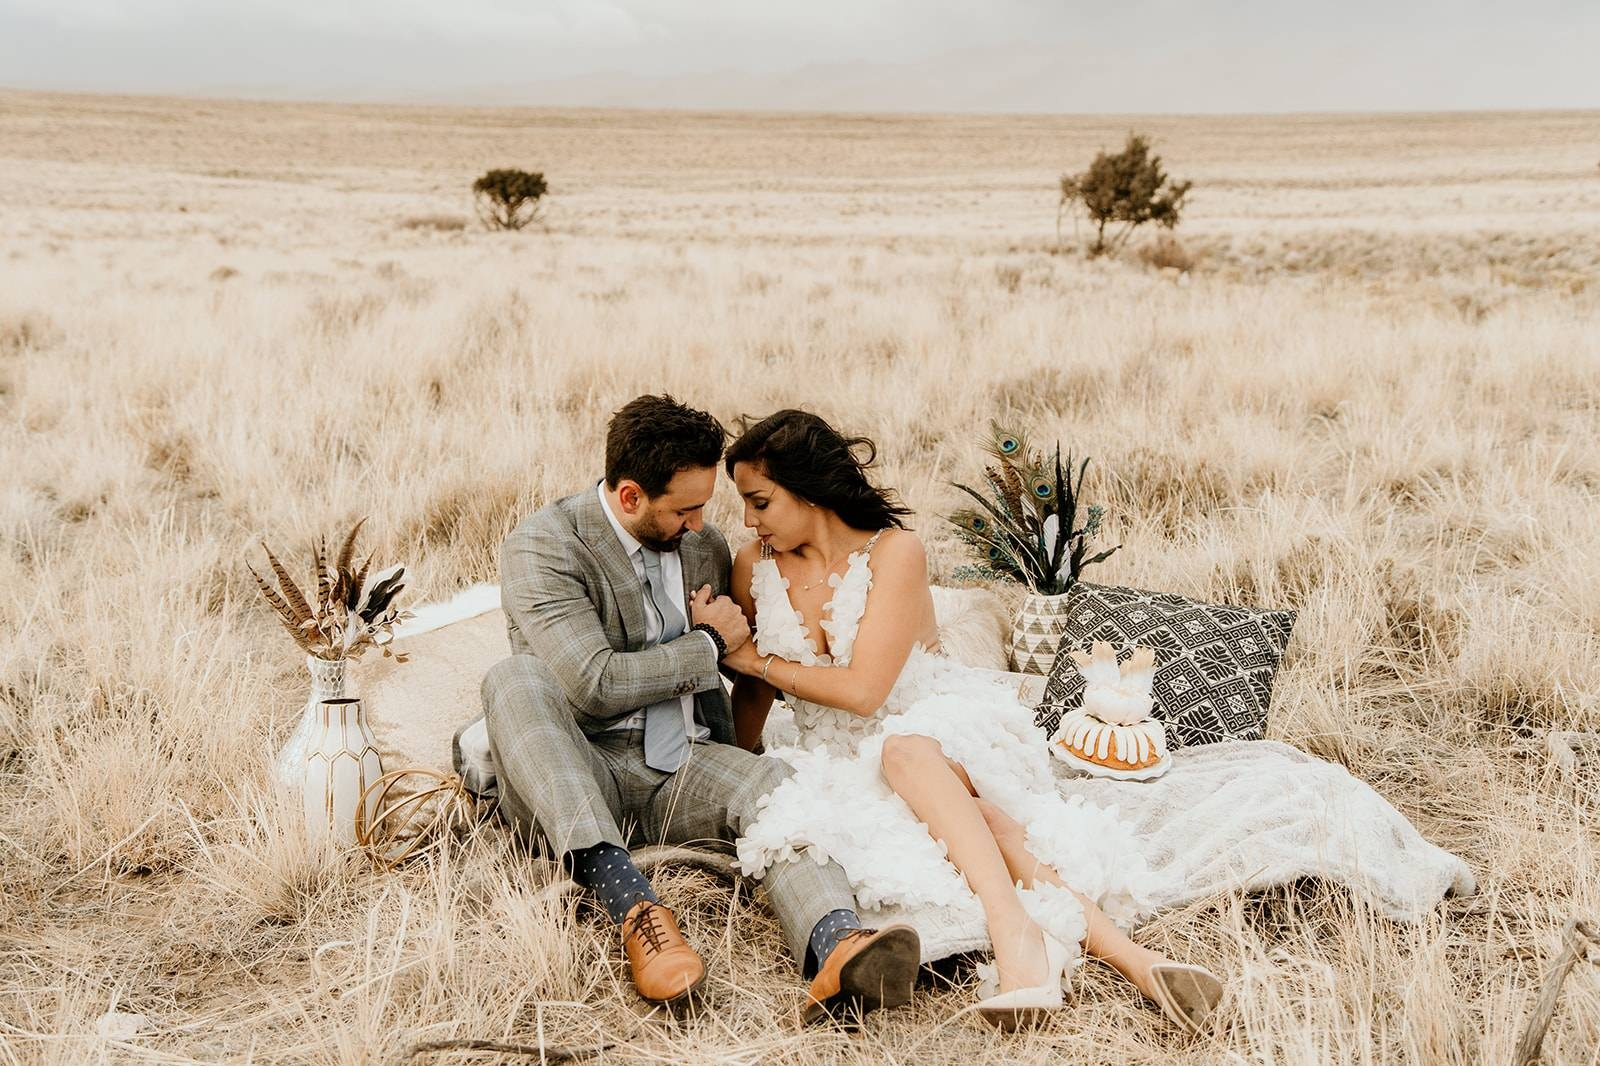 """CoutureColorado.com - December 2018""""This wedding styled shoot features southwest black, white, and gold decor at the one and only Great Sand Dunes National Park. """""""